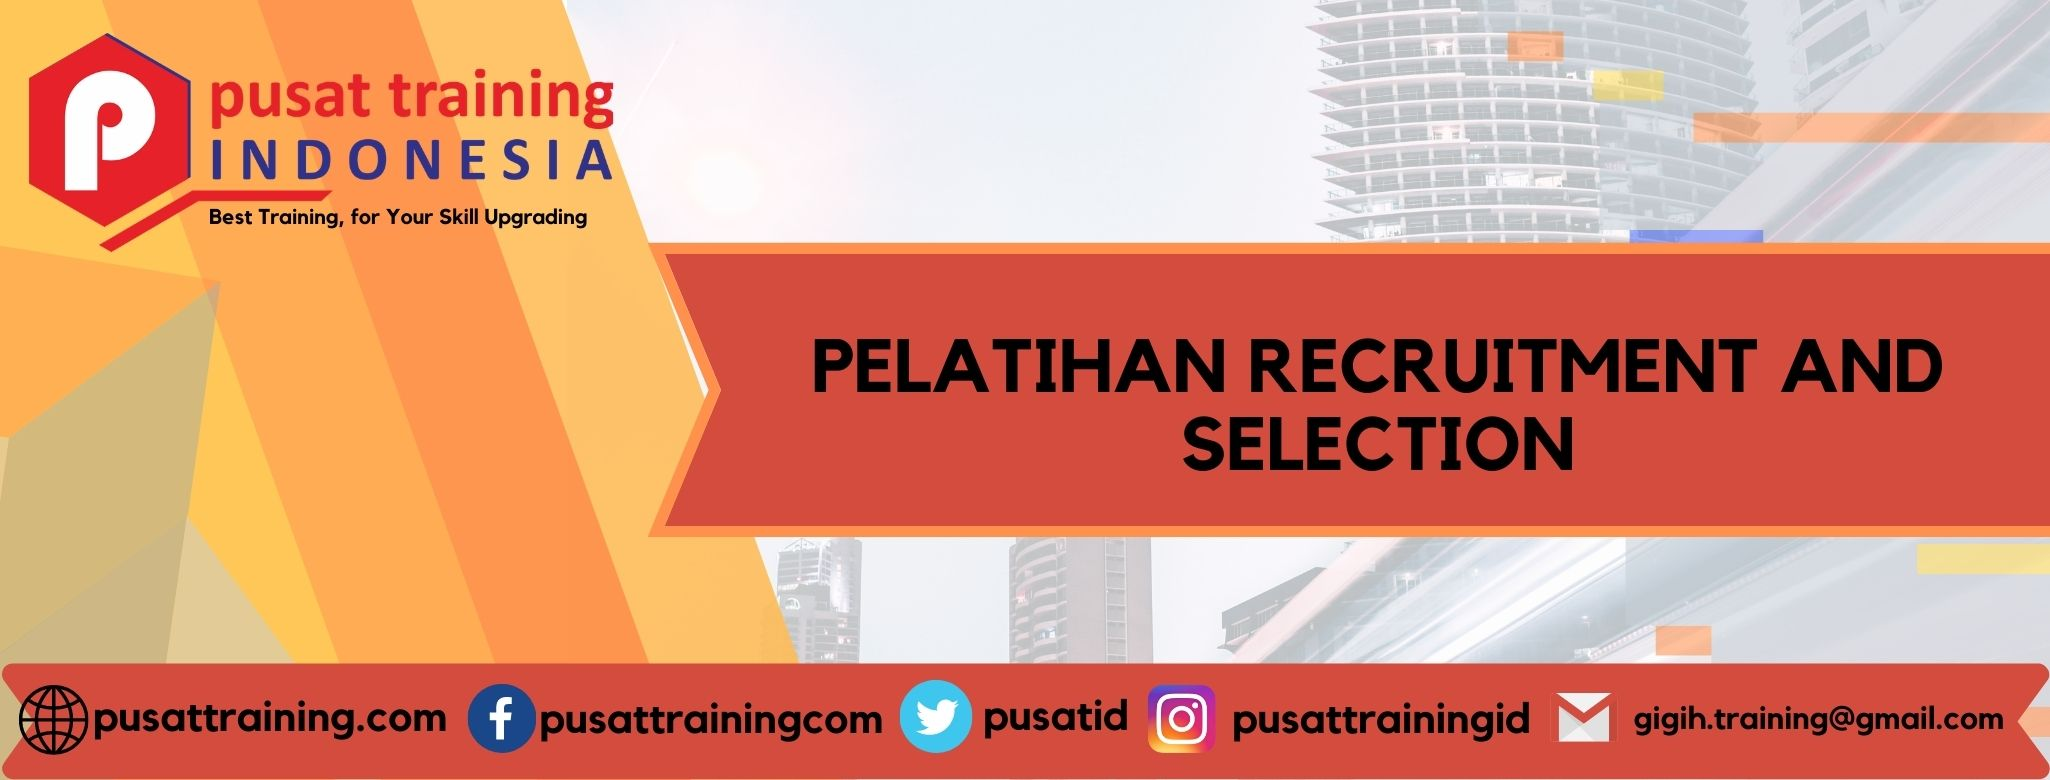 PELATIHAN RECRUITMENT AND SELECTION